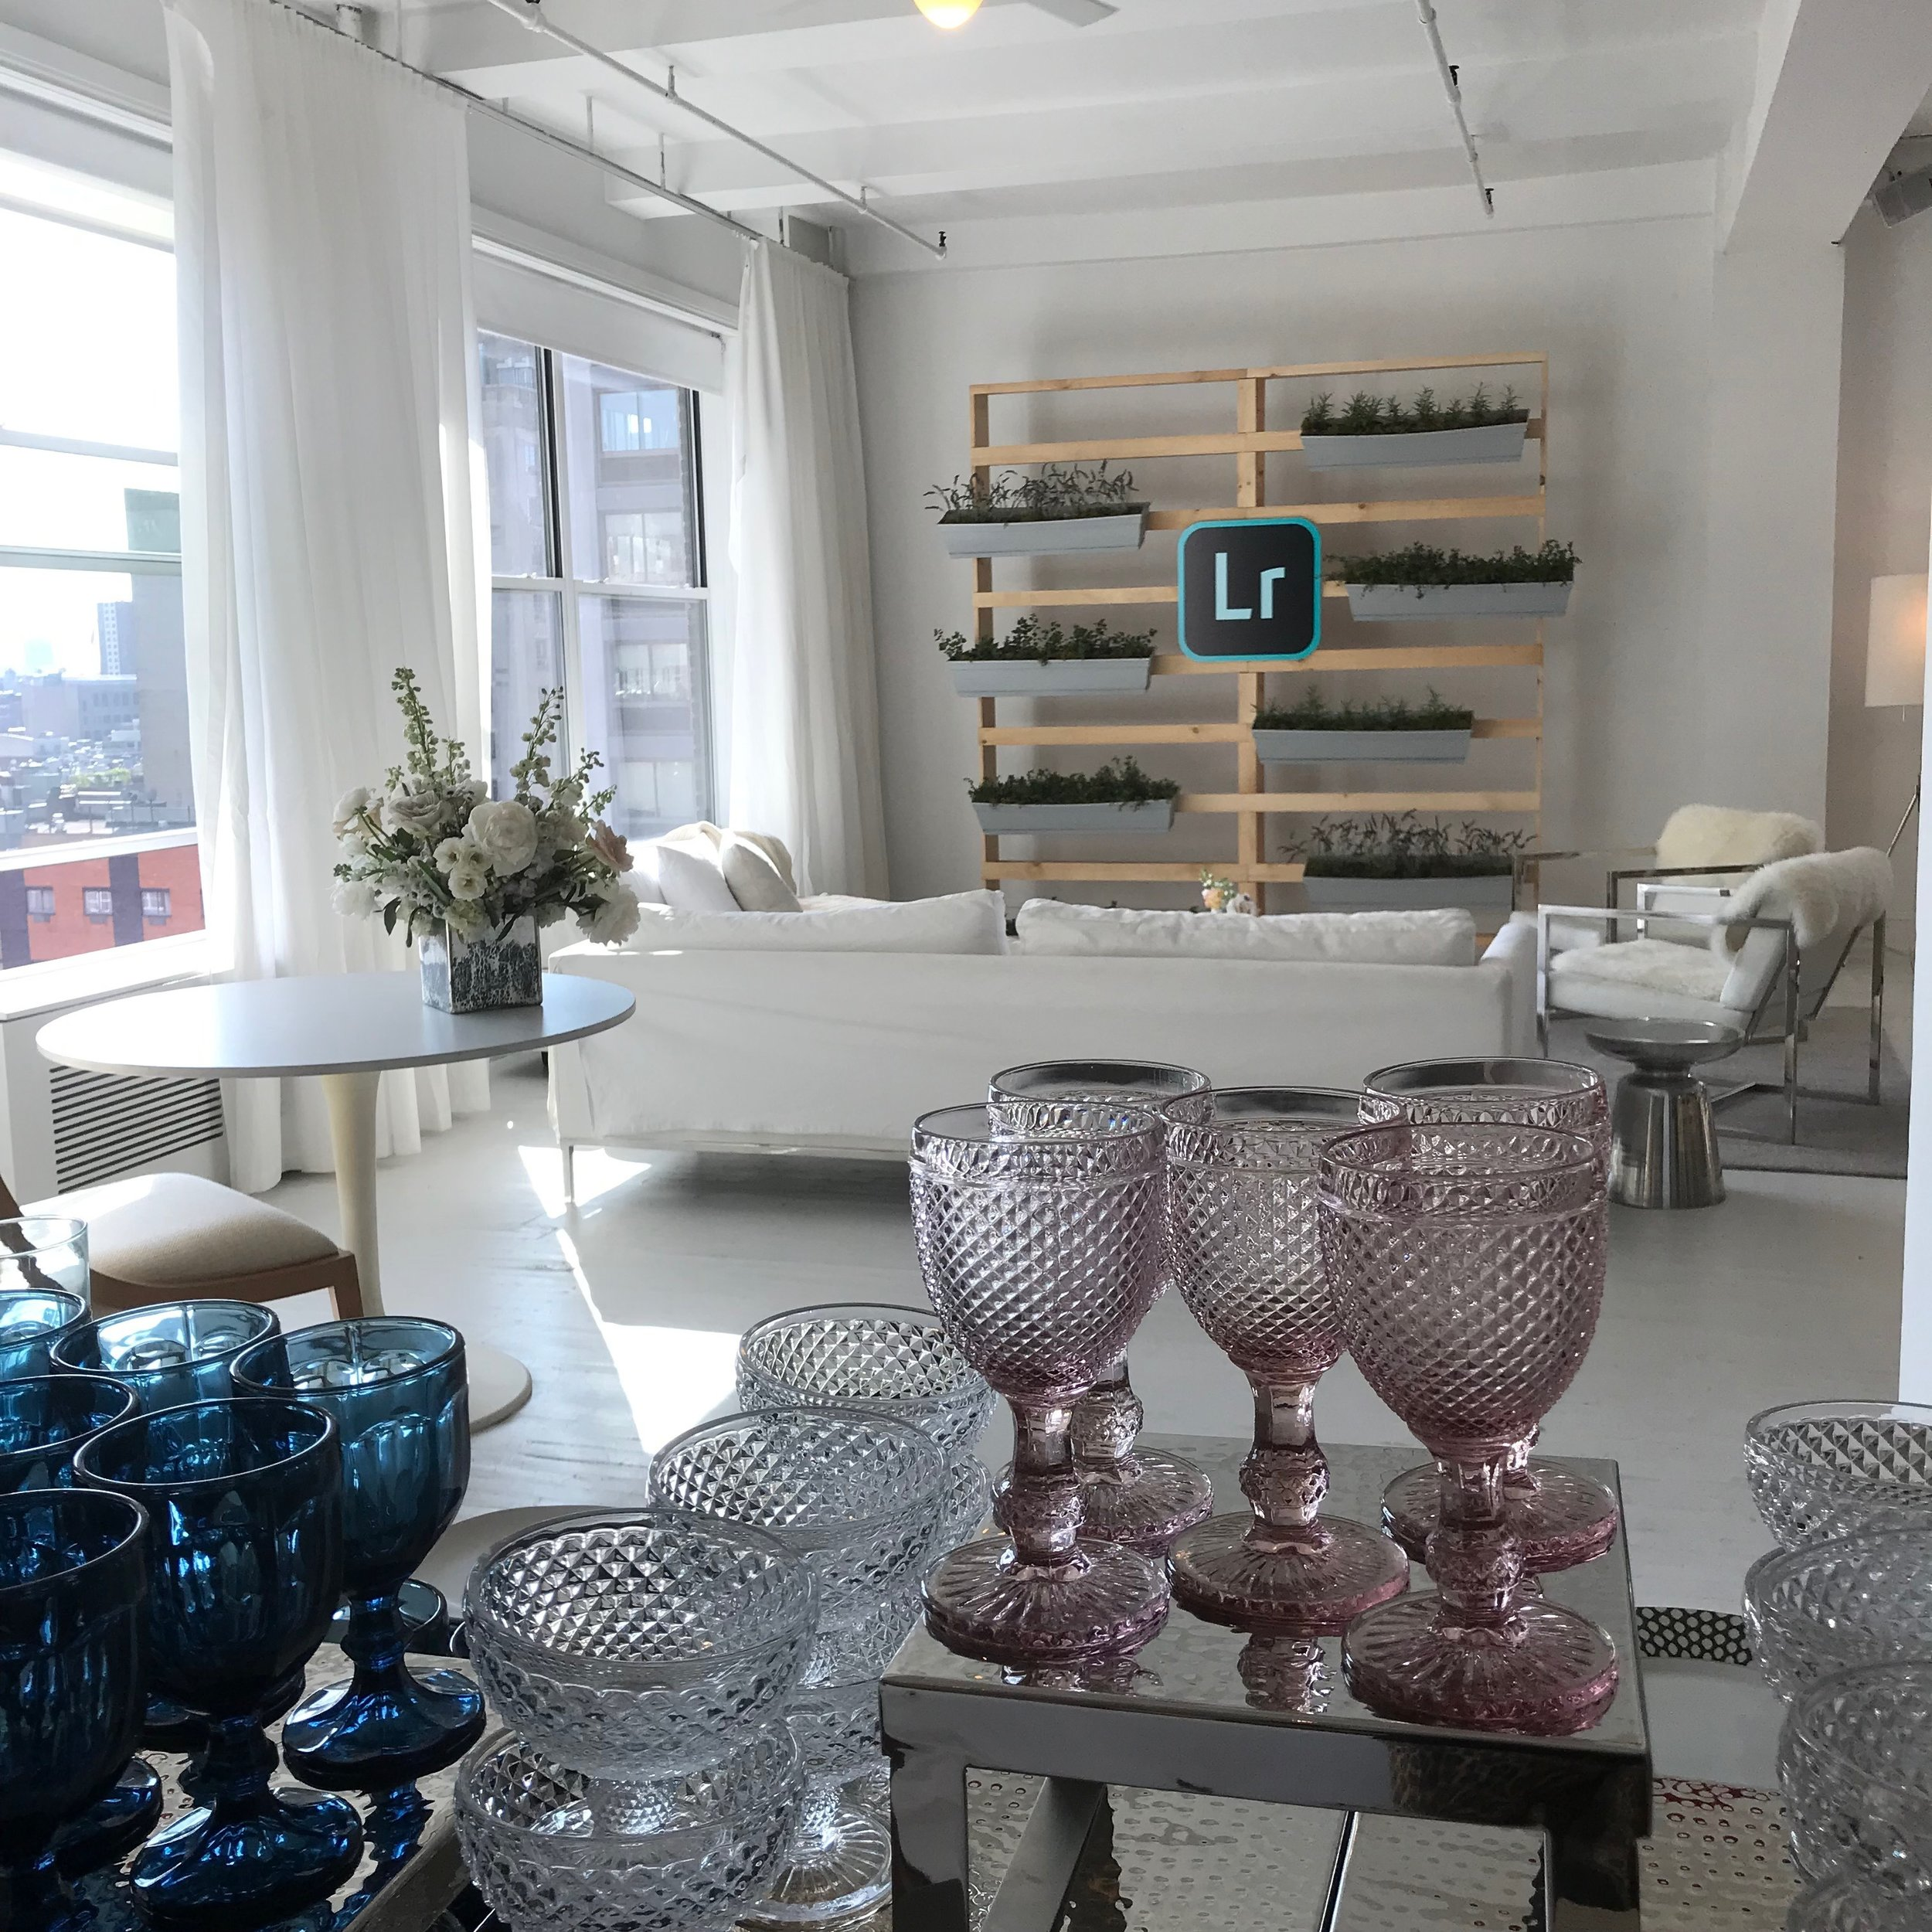 glassware-tinted-white-herb-wall-windows-event